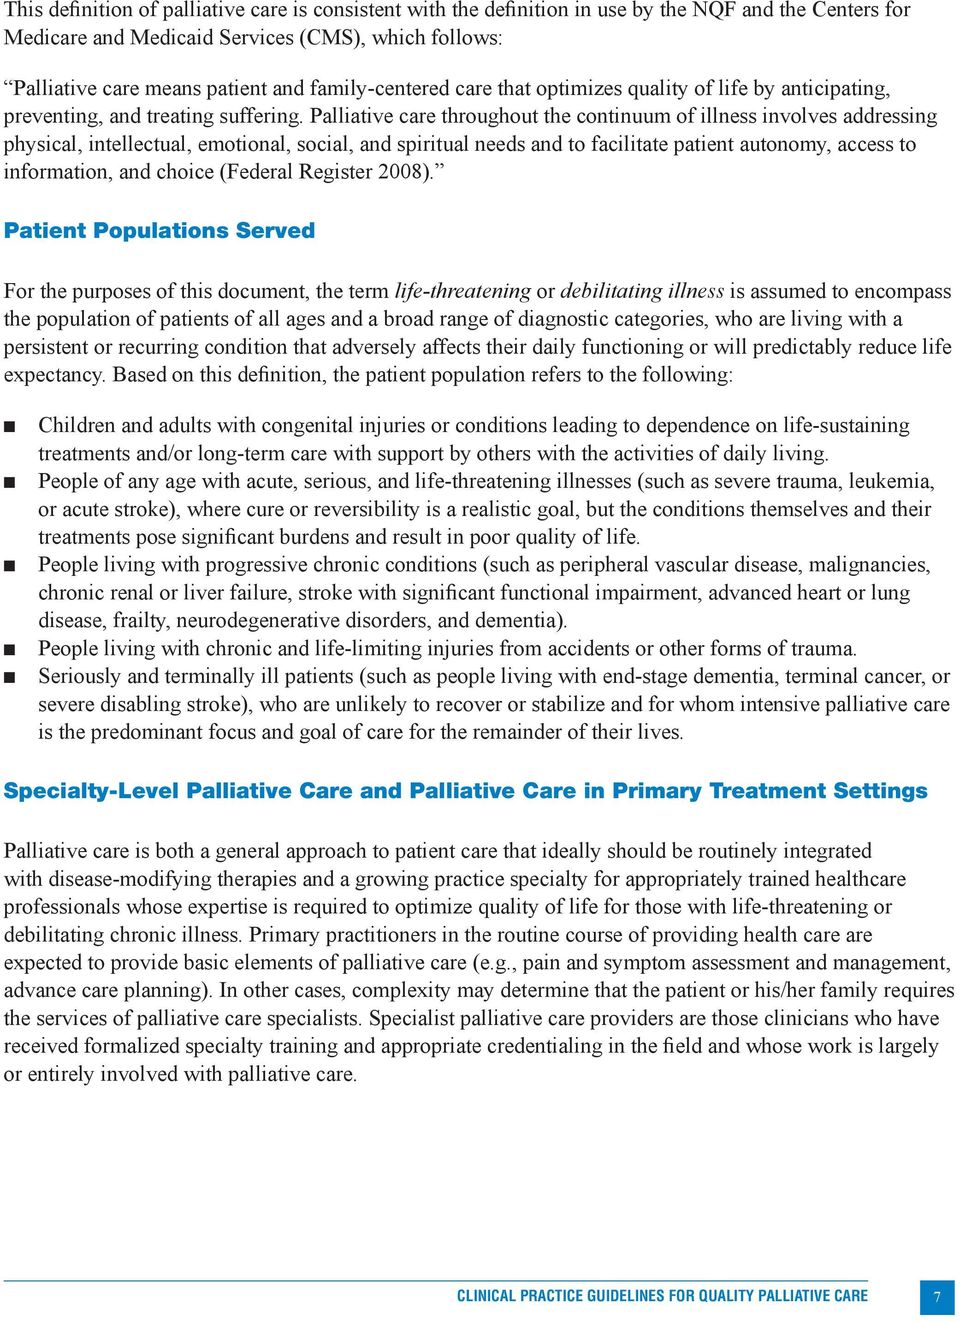 clinical practice guidelines for quality palliative care second